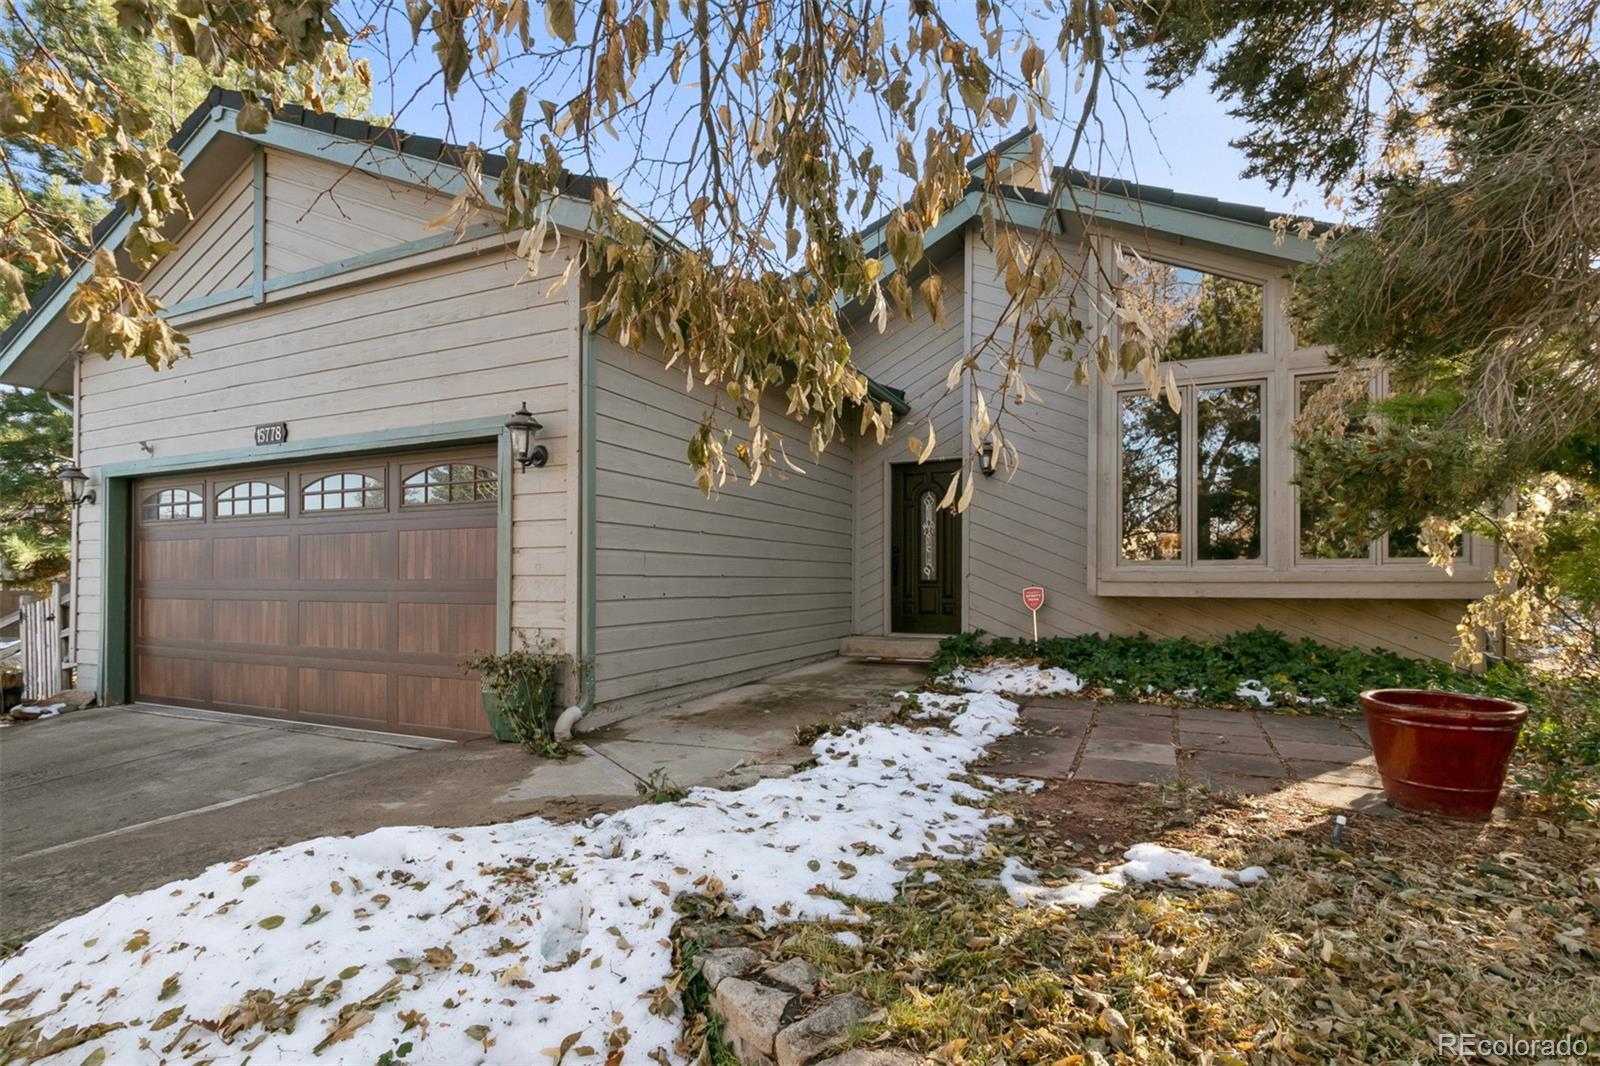 MLS# 4160125 - 3 - 15778 Cleekwood Way, Morrison, CO 80465